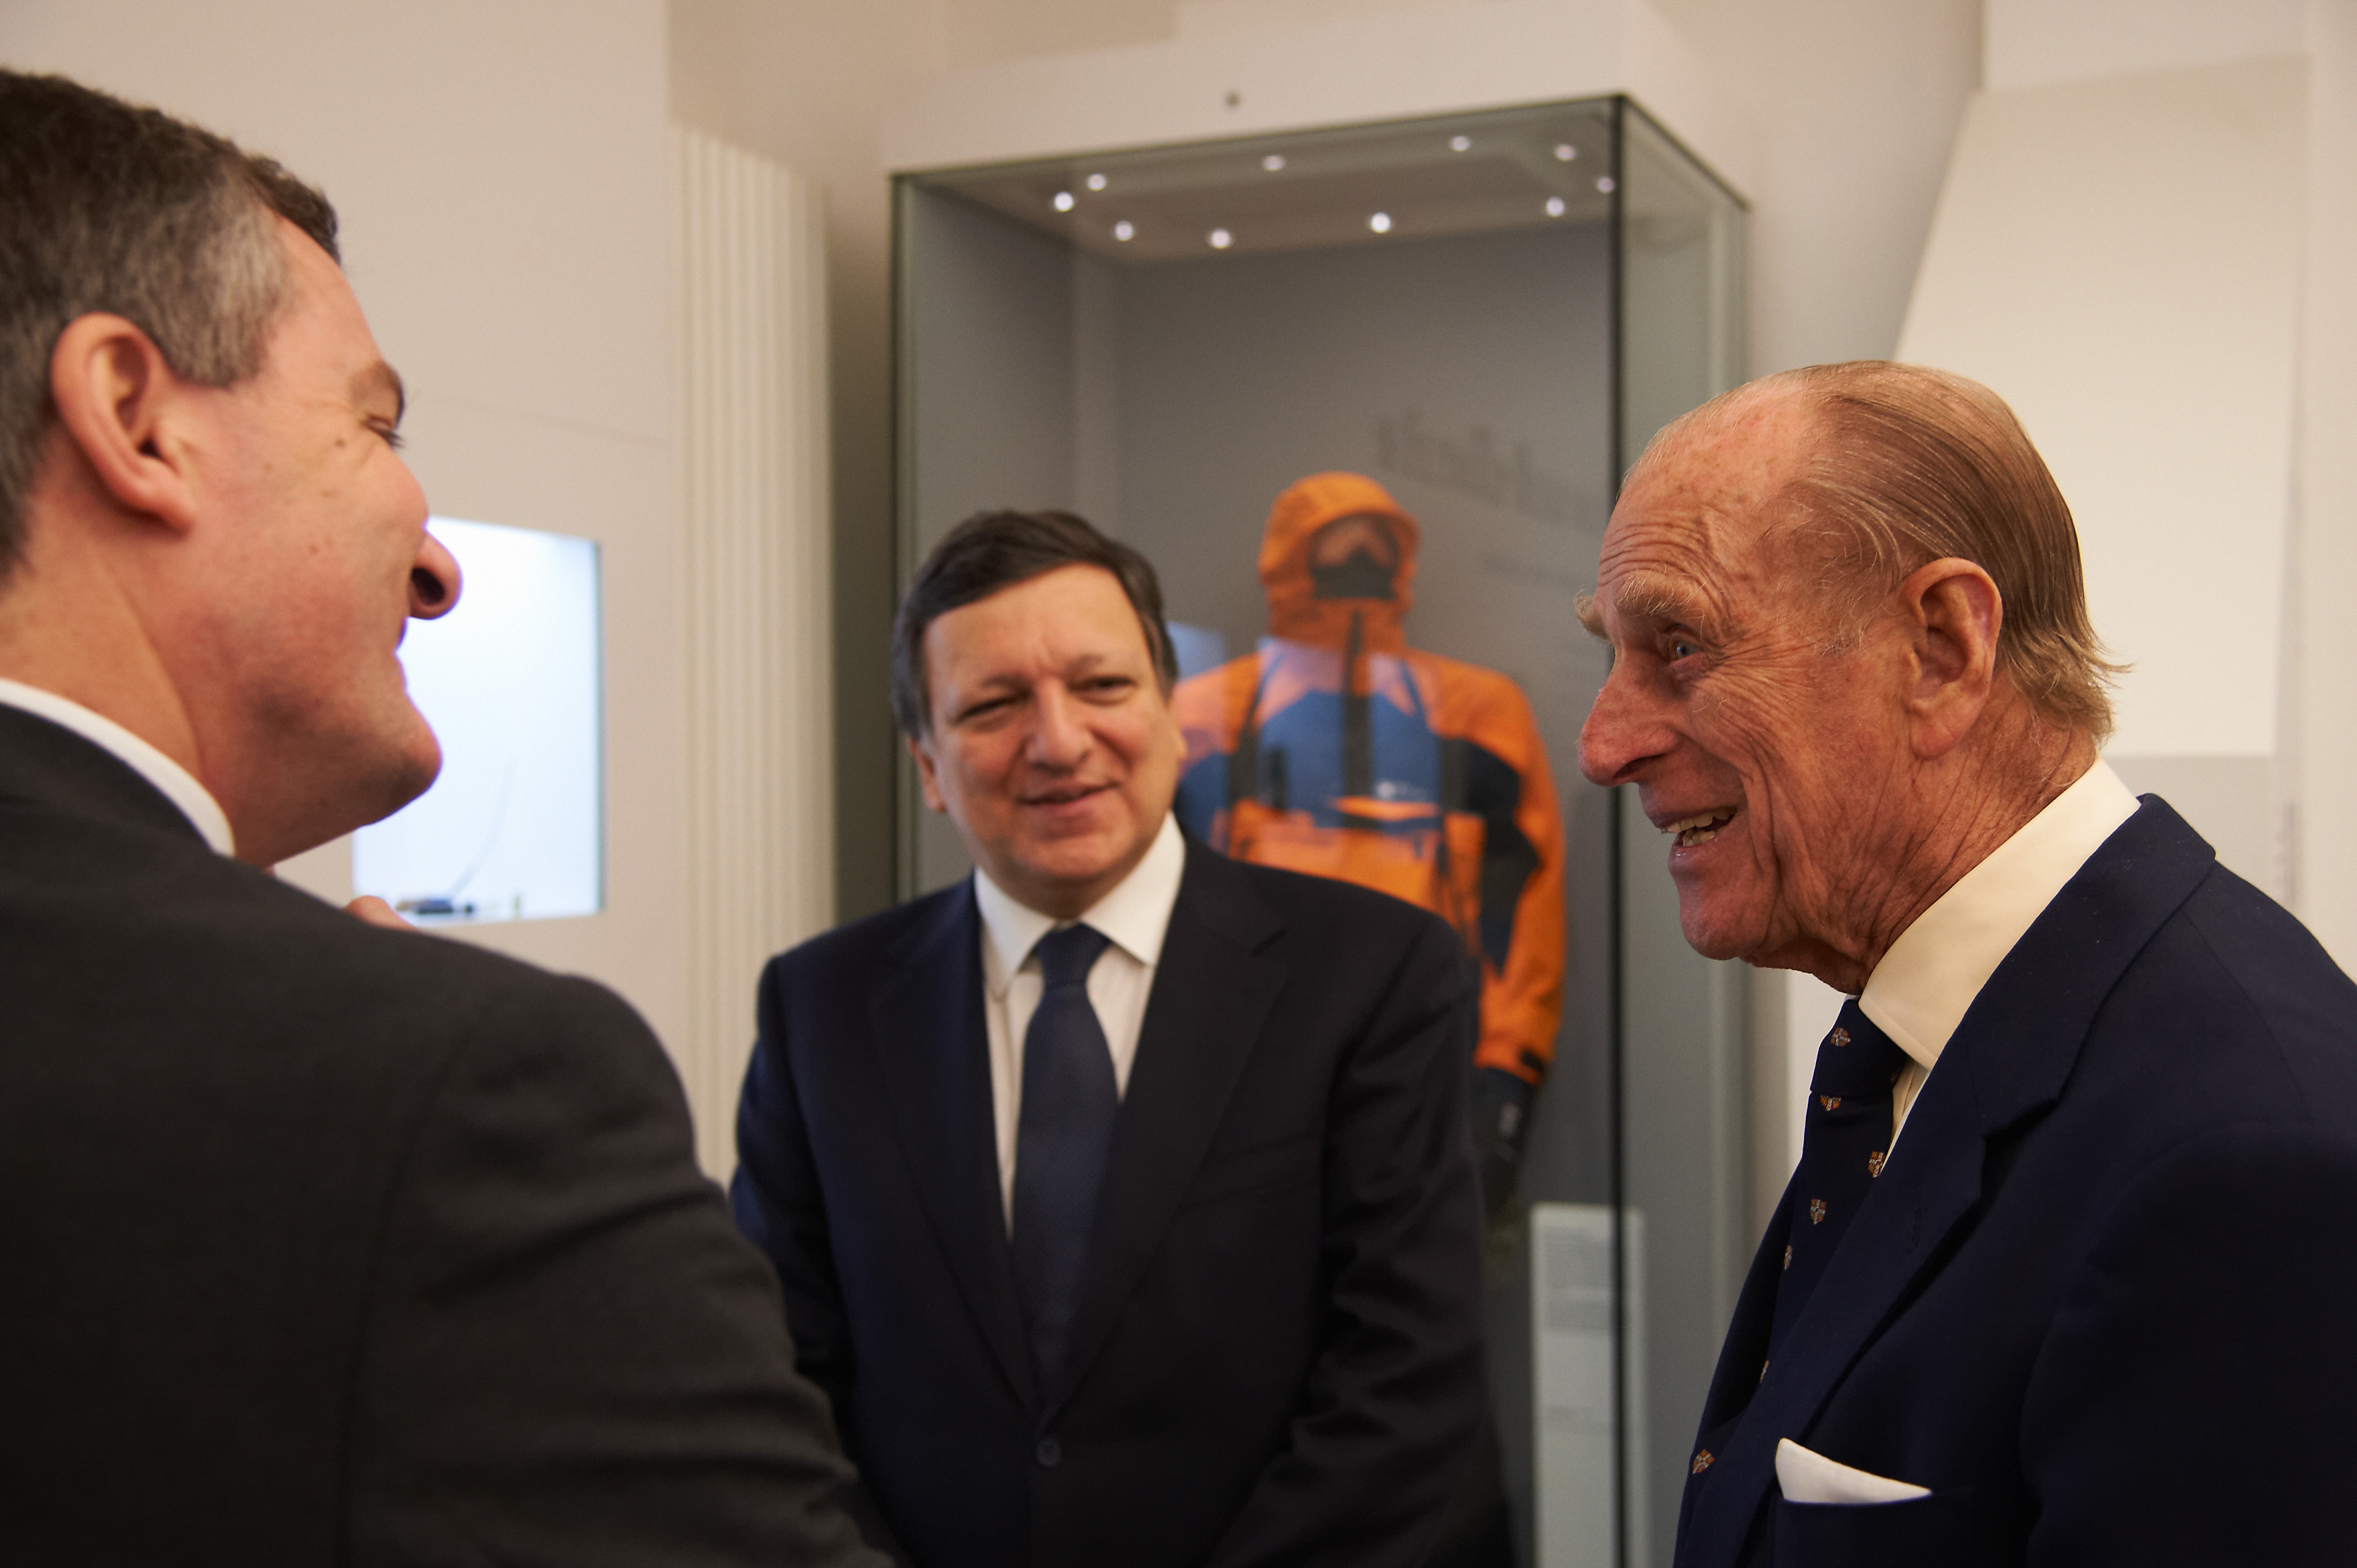 Chancellor and Mr Barroso